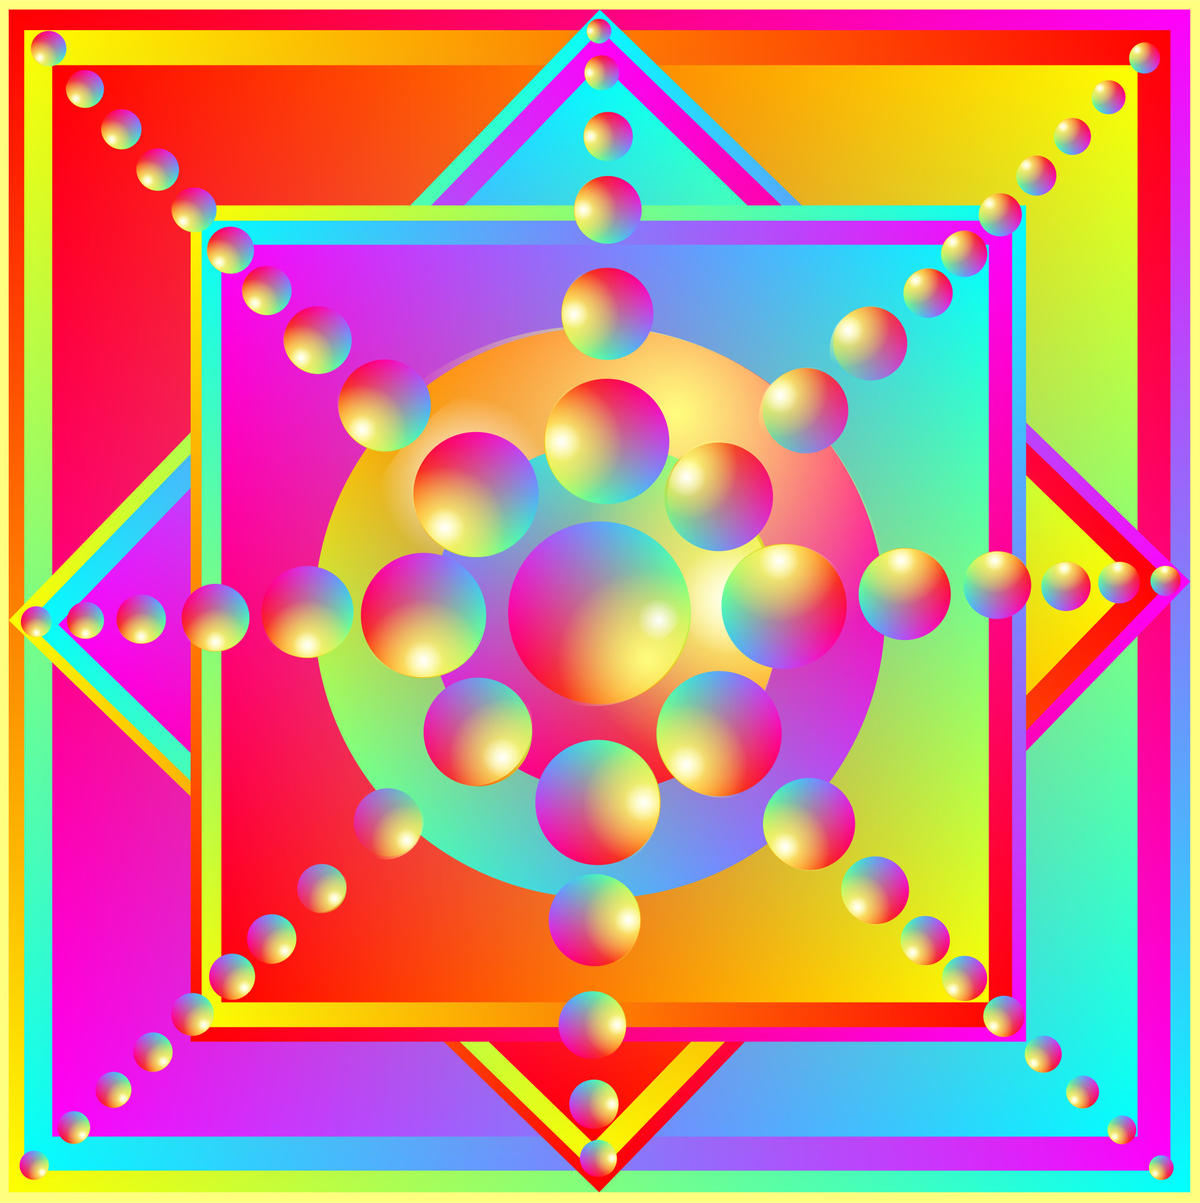 Symbol for Luck & Happiness Digital Energy Art by Silvia Hartmann